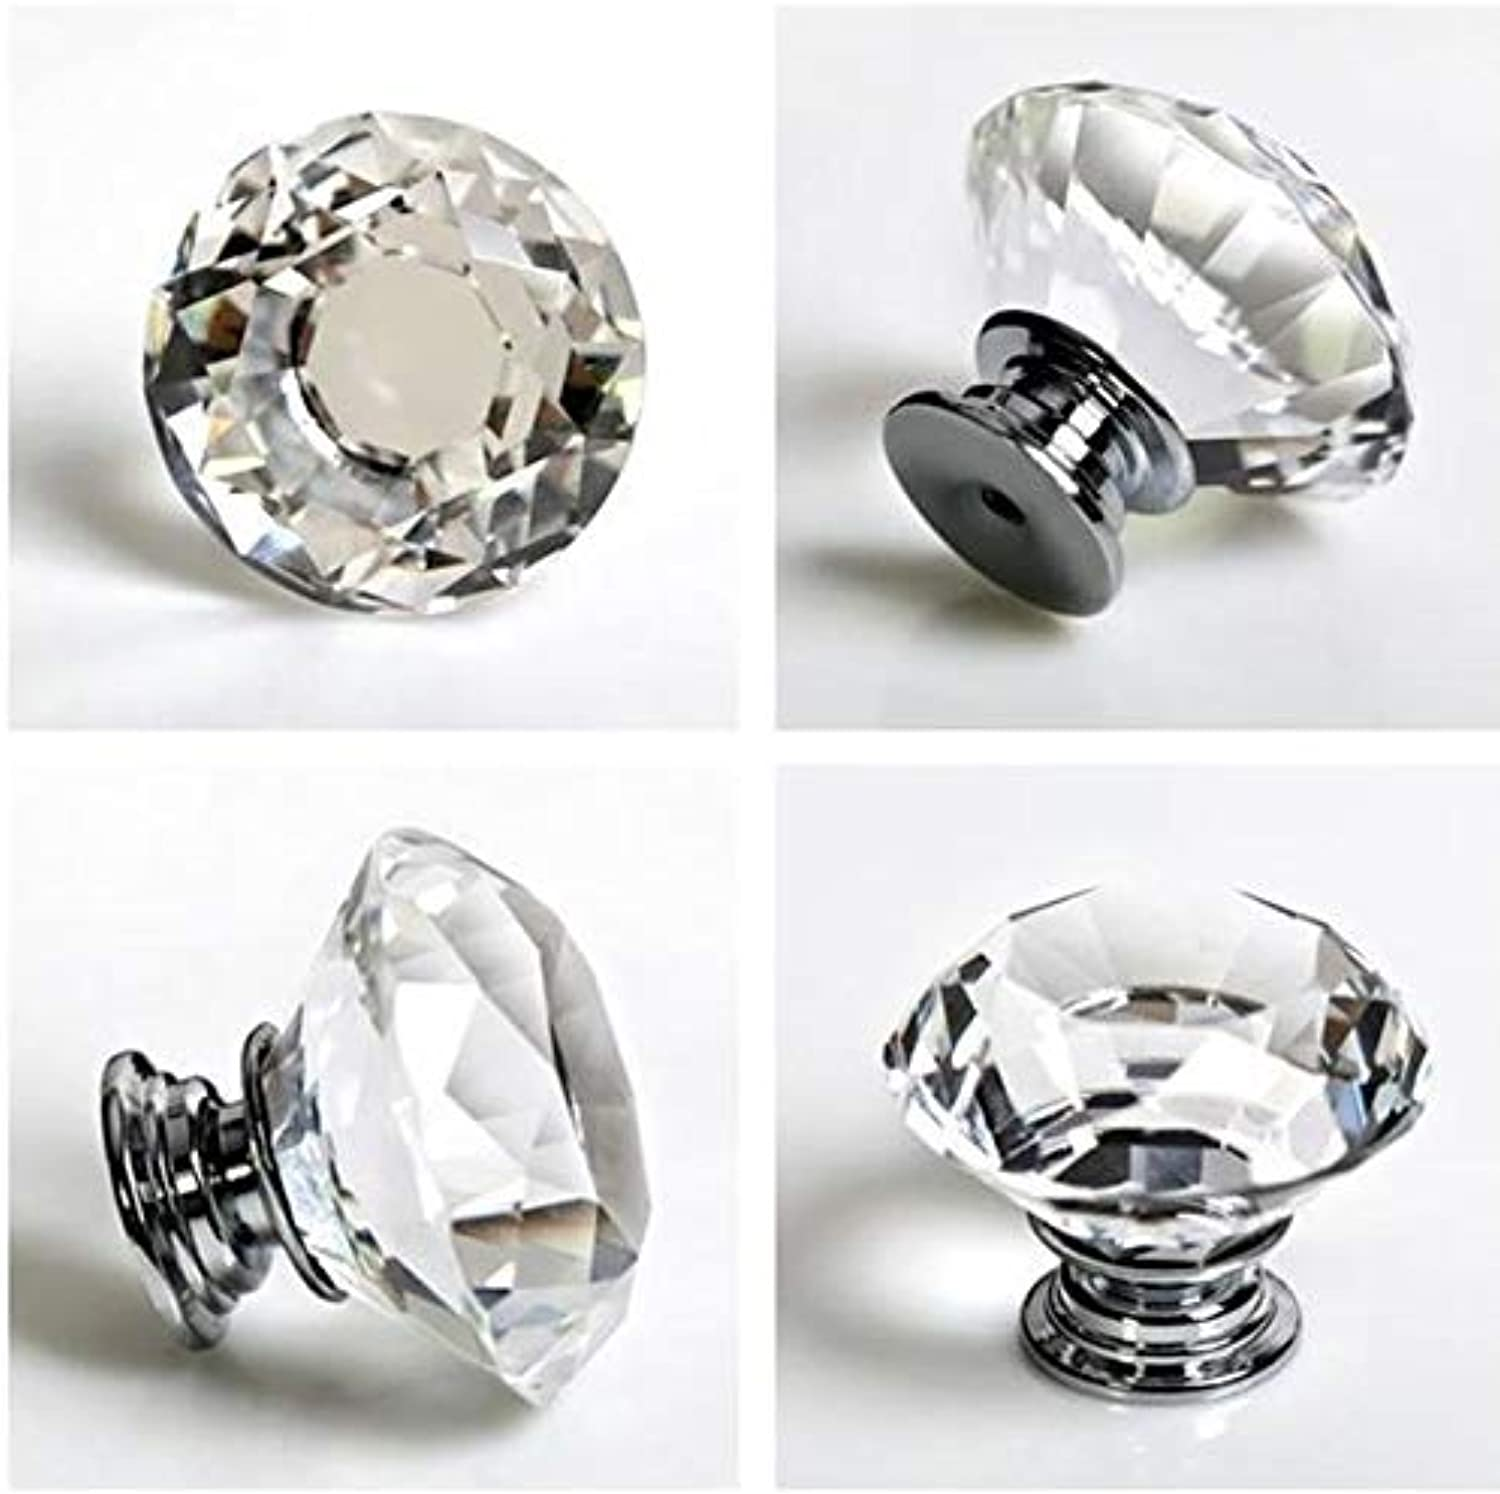 New Modern Home Transparent Crystal Cabinet Knobs Drawer Pull Round Cut Handles  (color  Transparent)